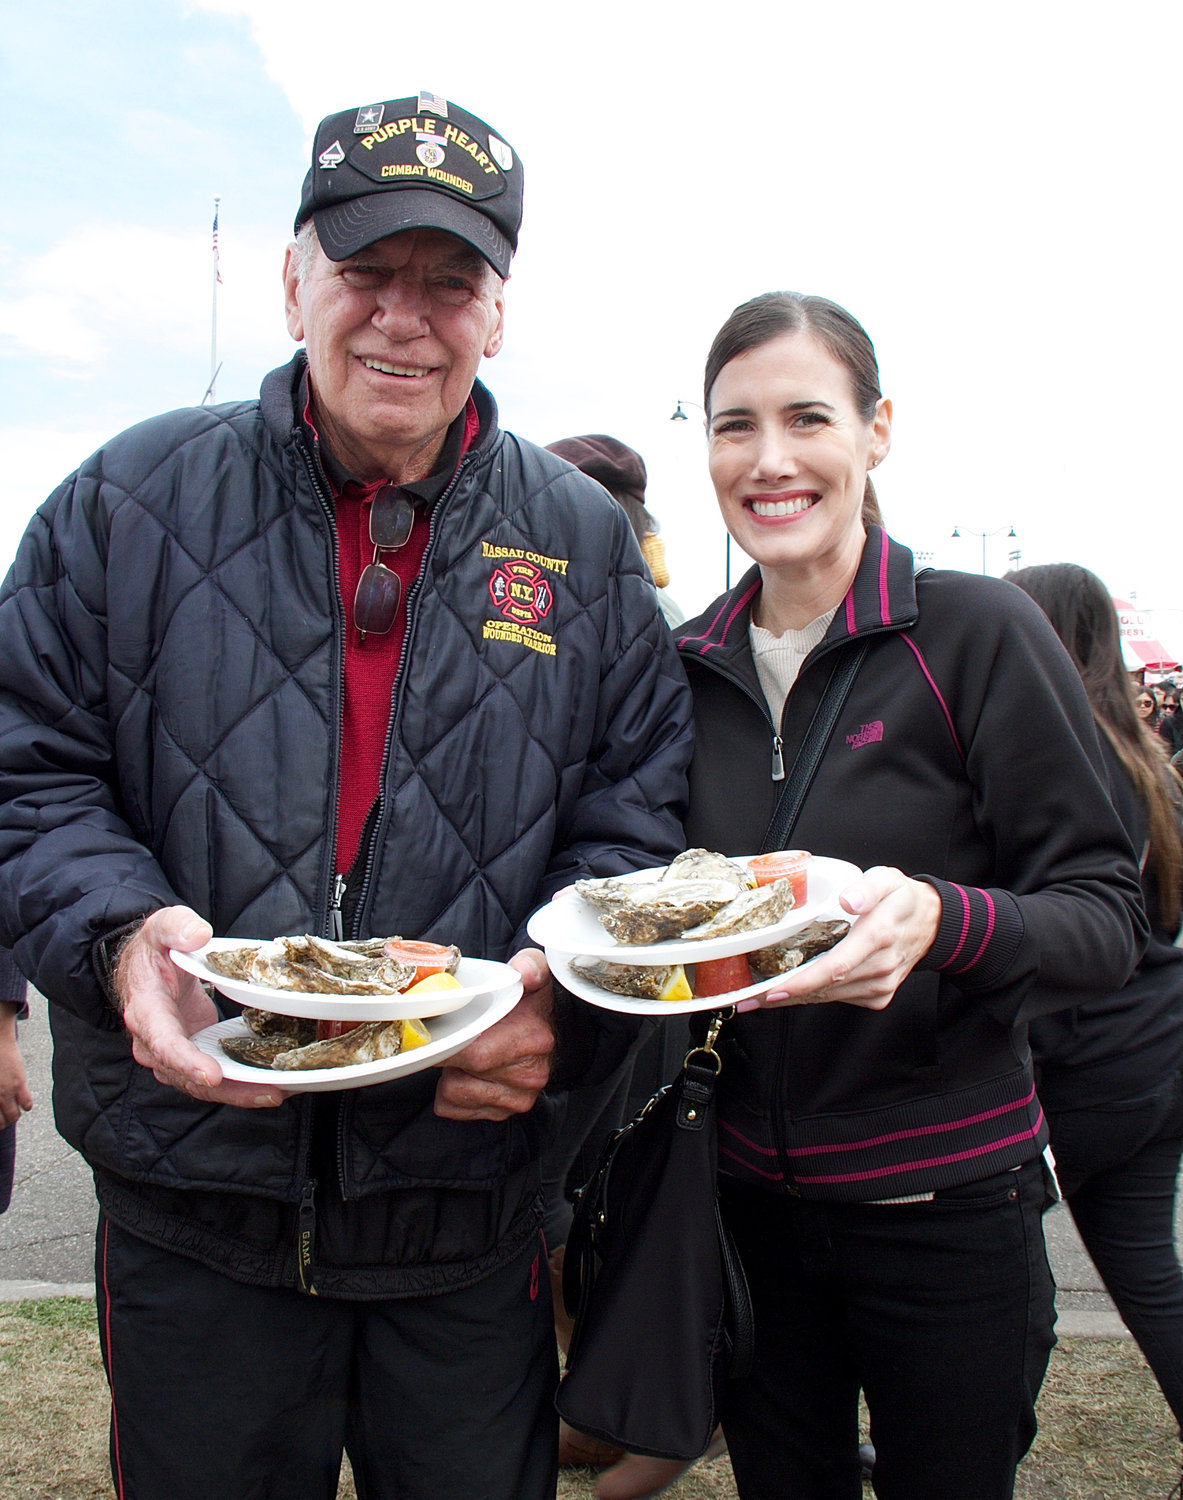 Michael Dolan and his daughter Colleen bought some oysters.